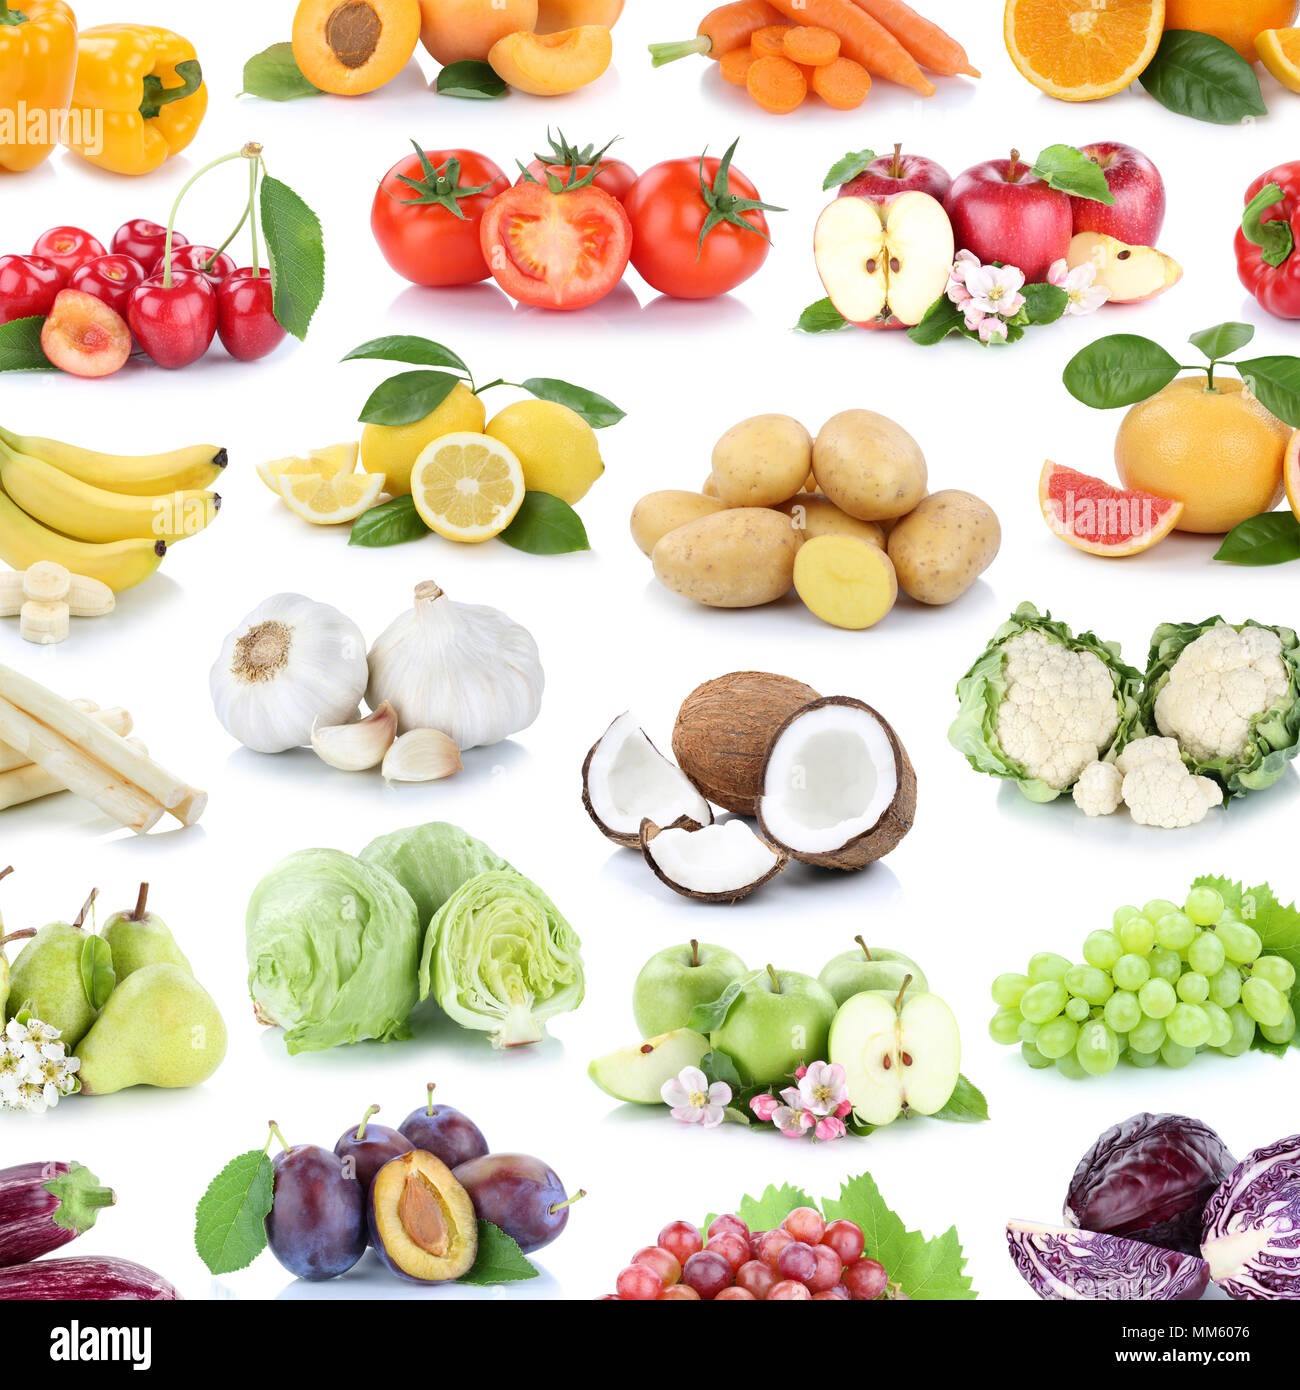 Fruits and vegetables collection background square apples banana oranges lemons grapes fruit on a white background - Stock Image